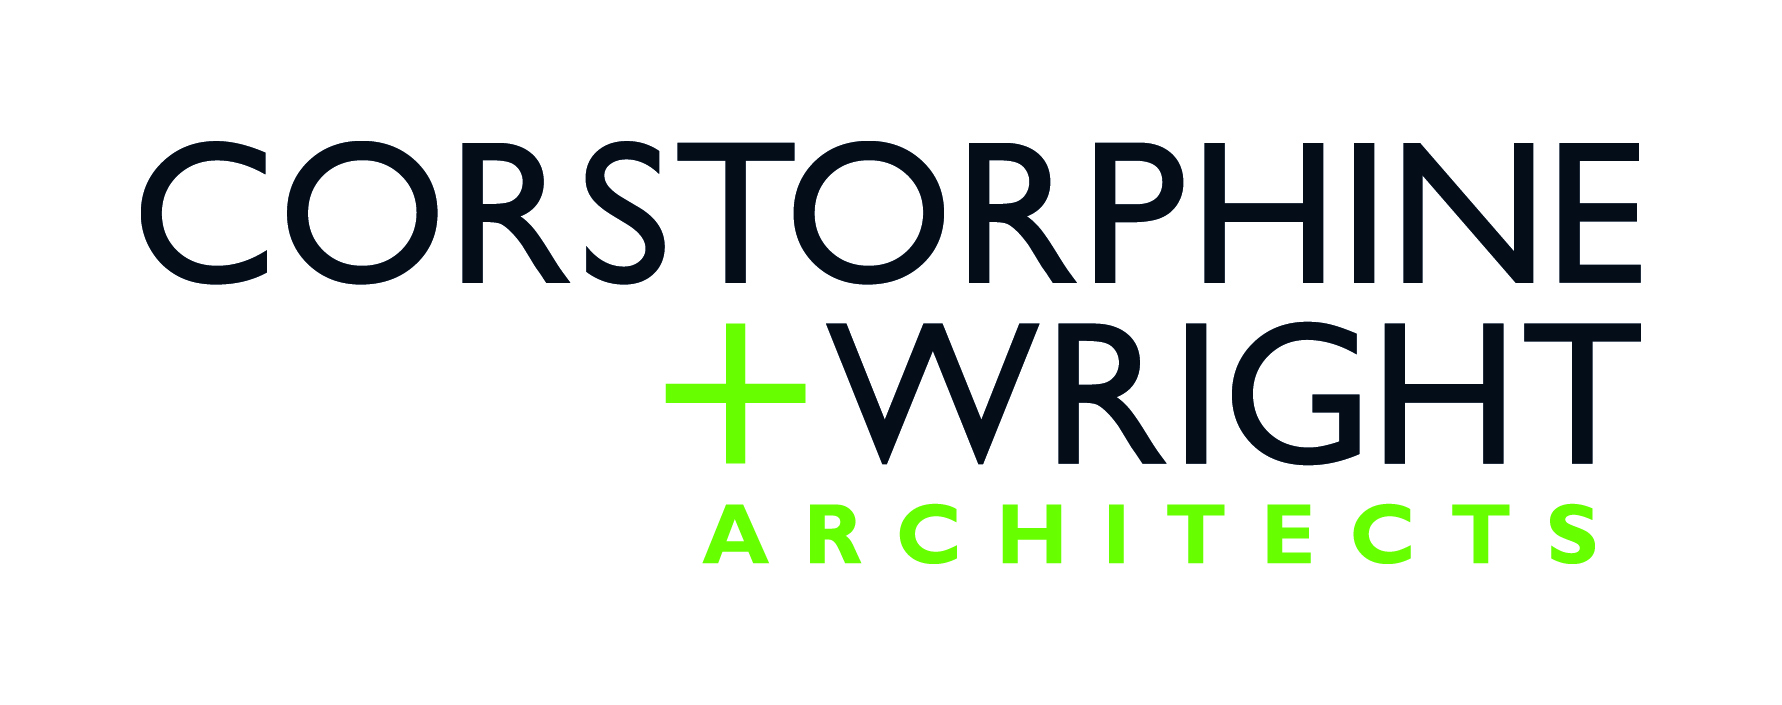 Corstorphine + Wright Architects